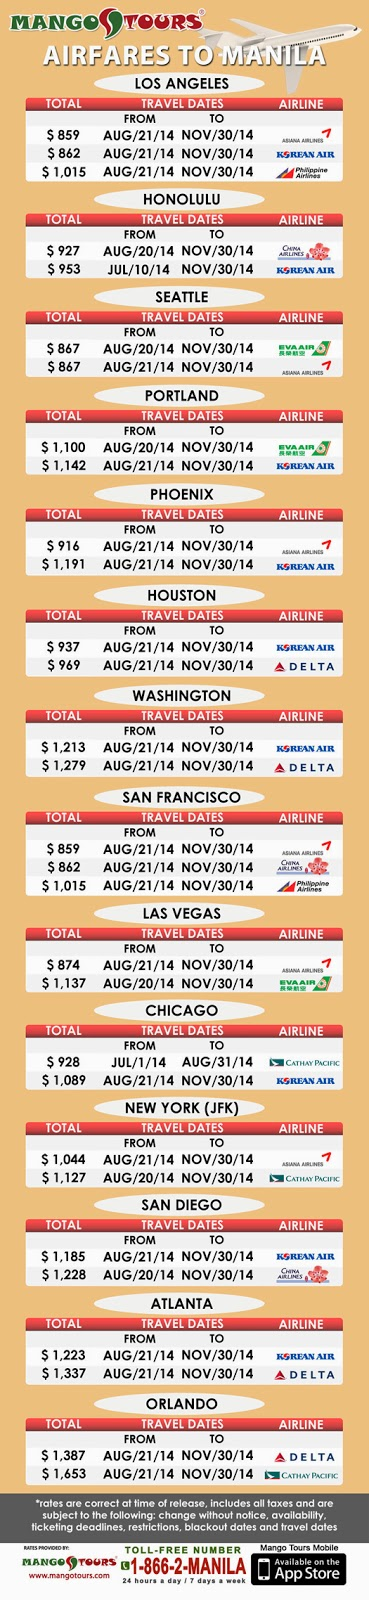 Current airfares to Manila as of May 31, 2014